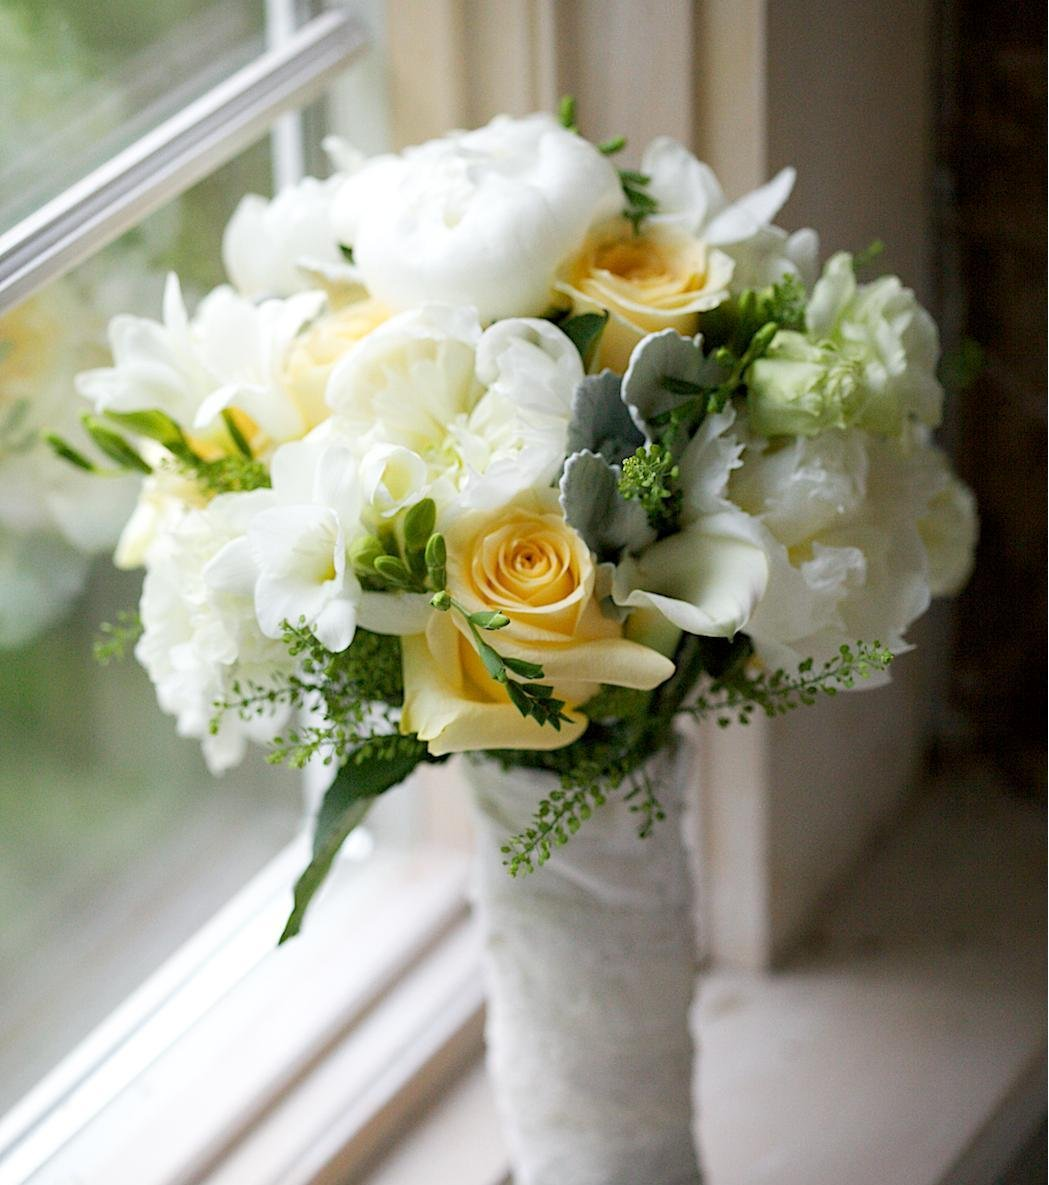 Wedding Flowers In Nj : Wyckoff florist and gifts reviews ratings wedding